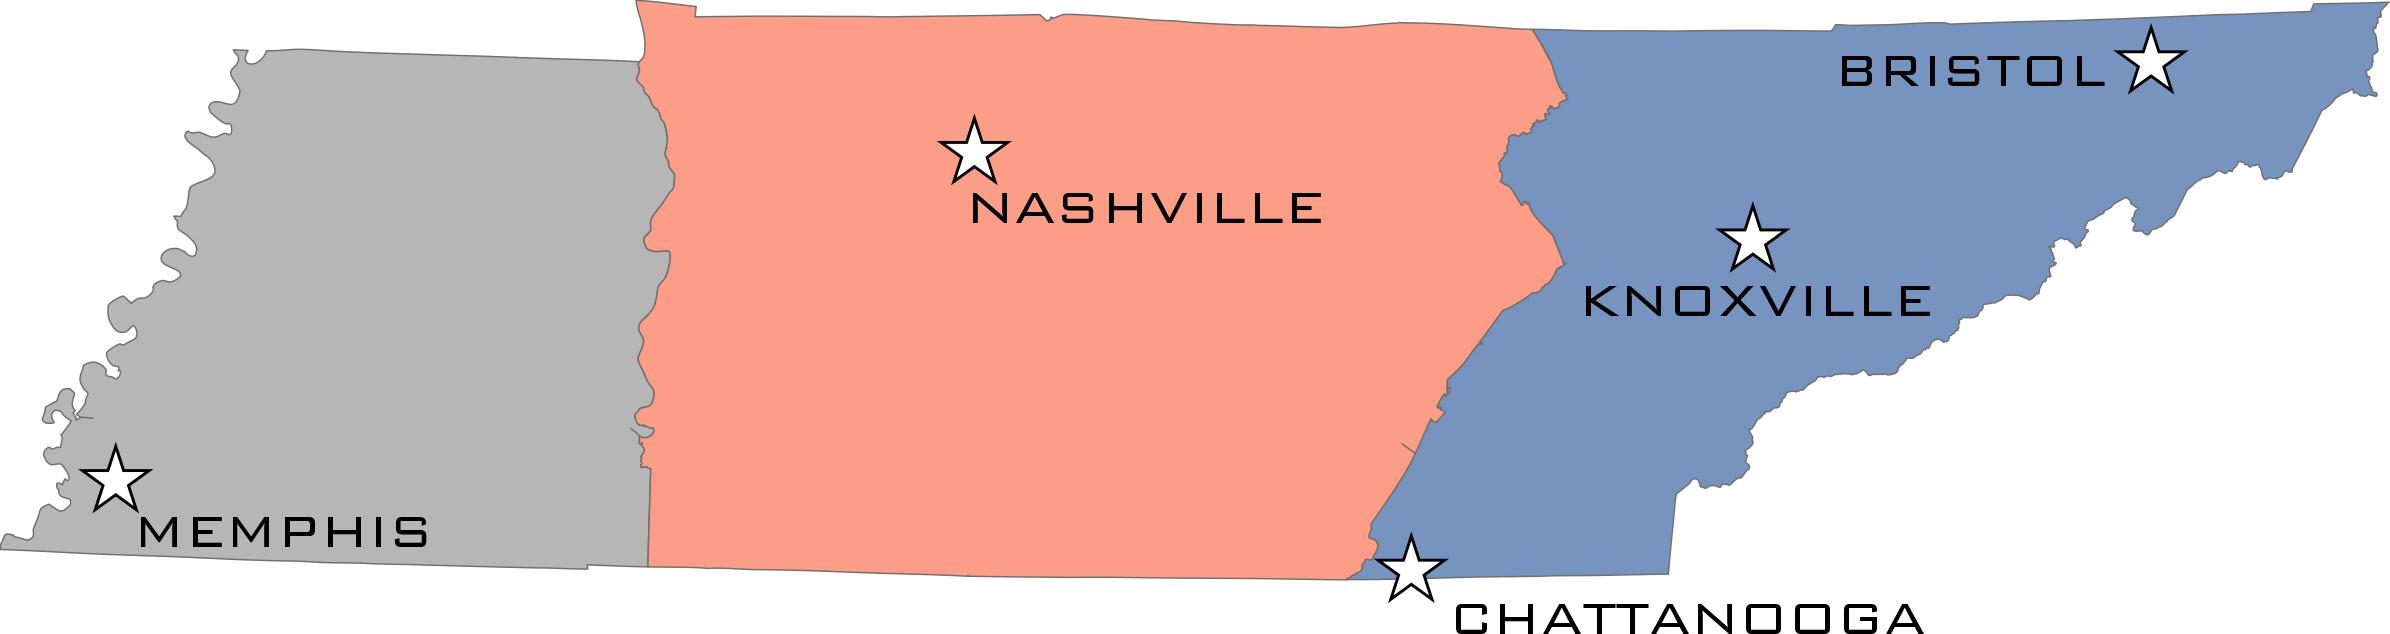 Maps TN Entertainment Commission Tennessee Entertainment Commission